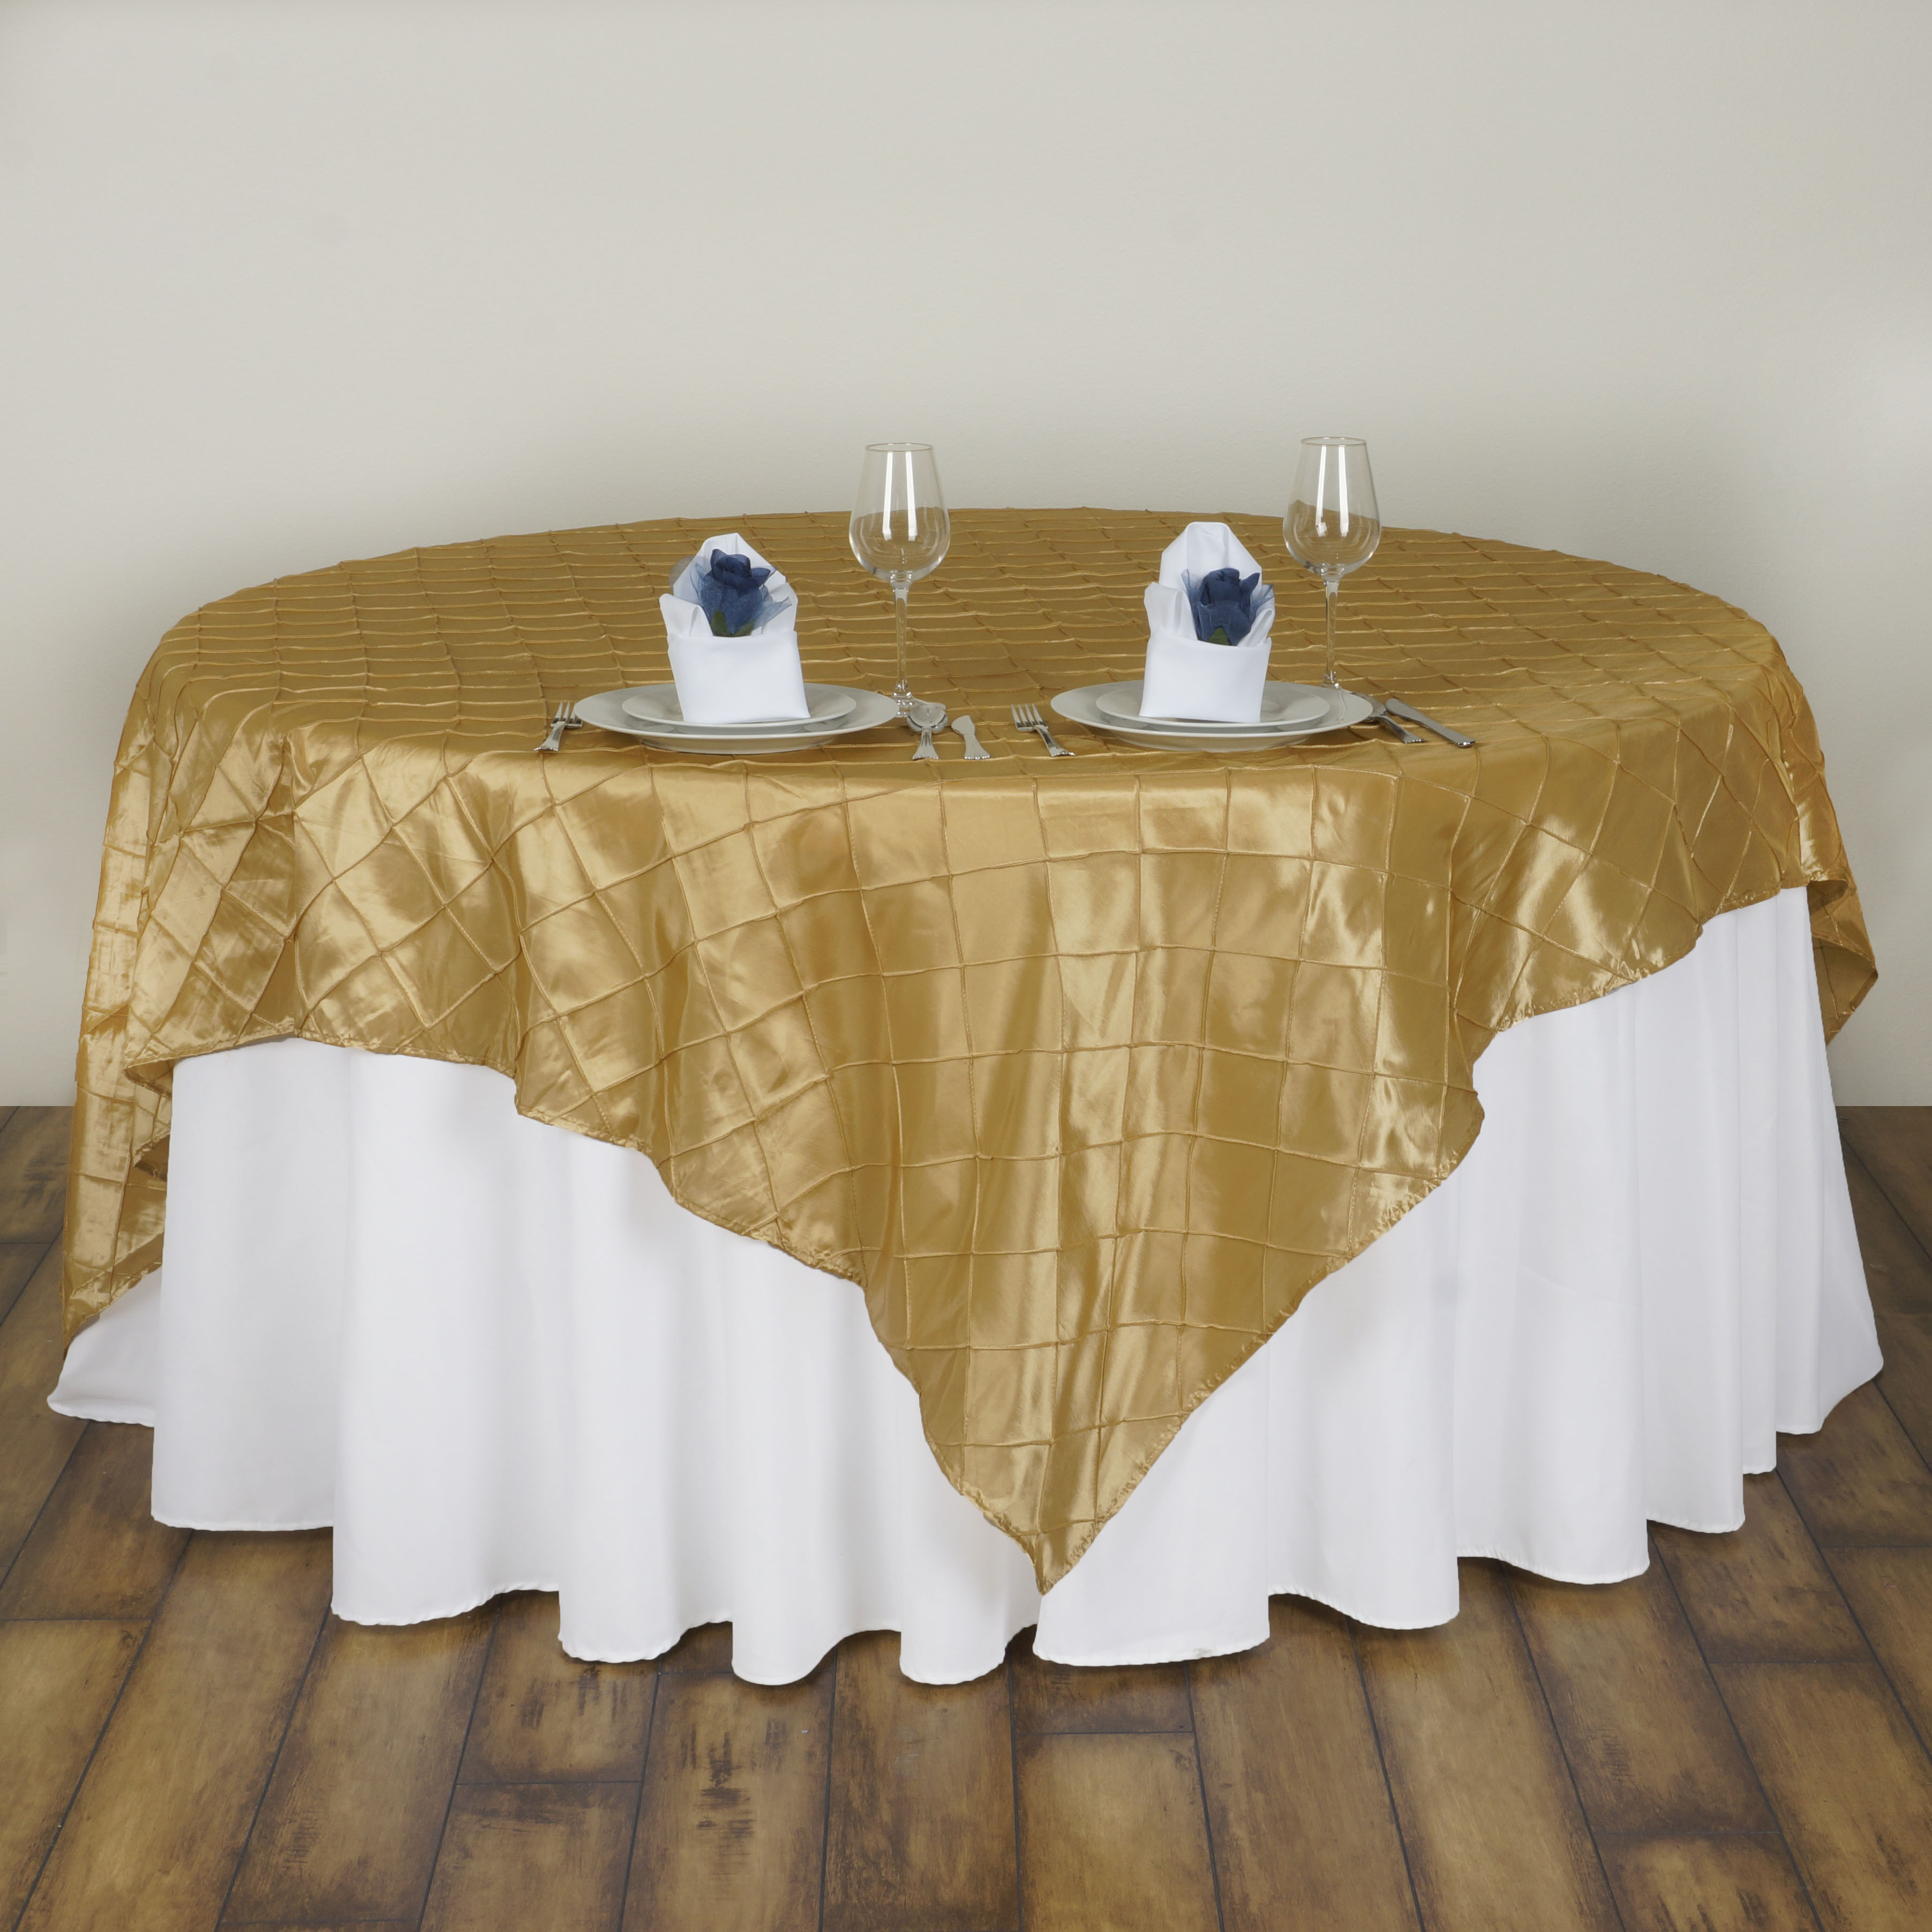 6 pcs 72x72 square pintuck table overlays wedding linens for Table linens